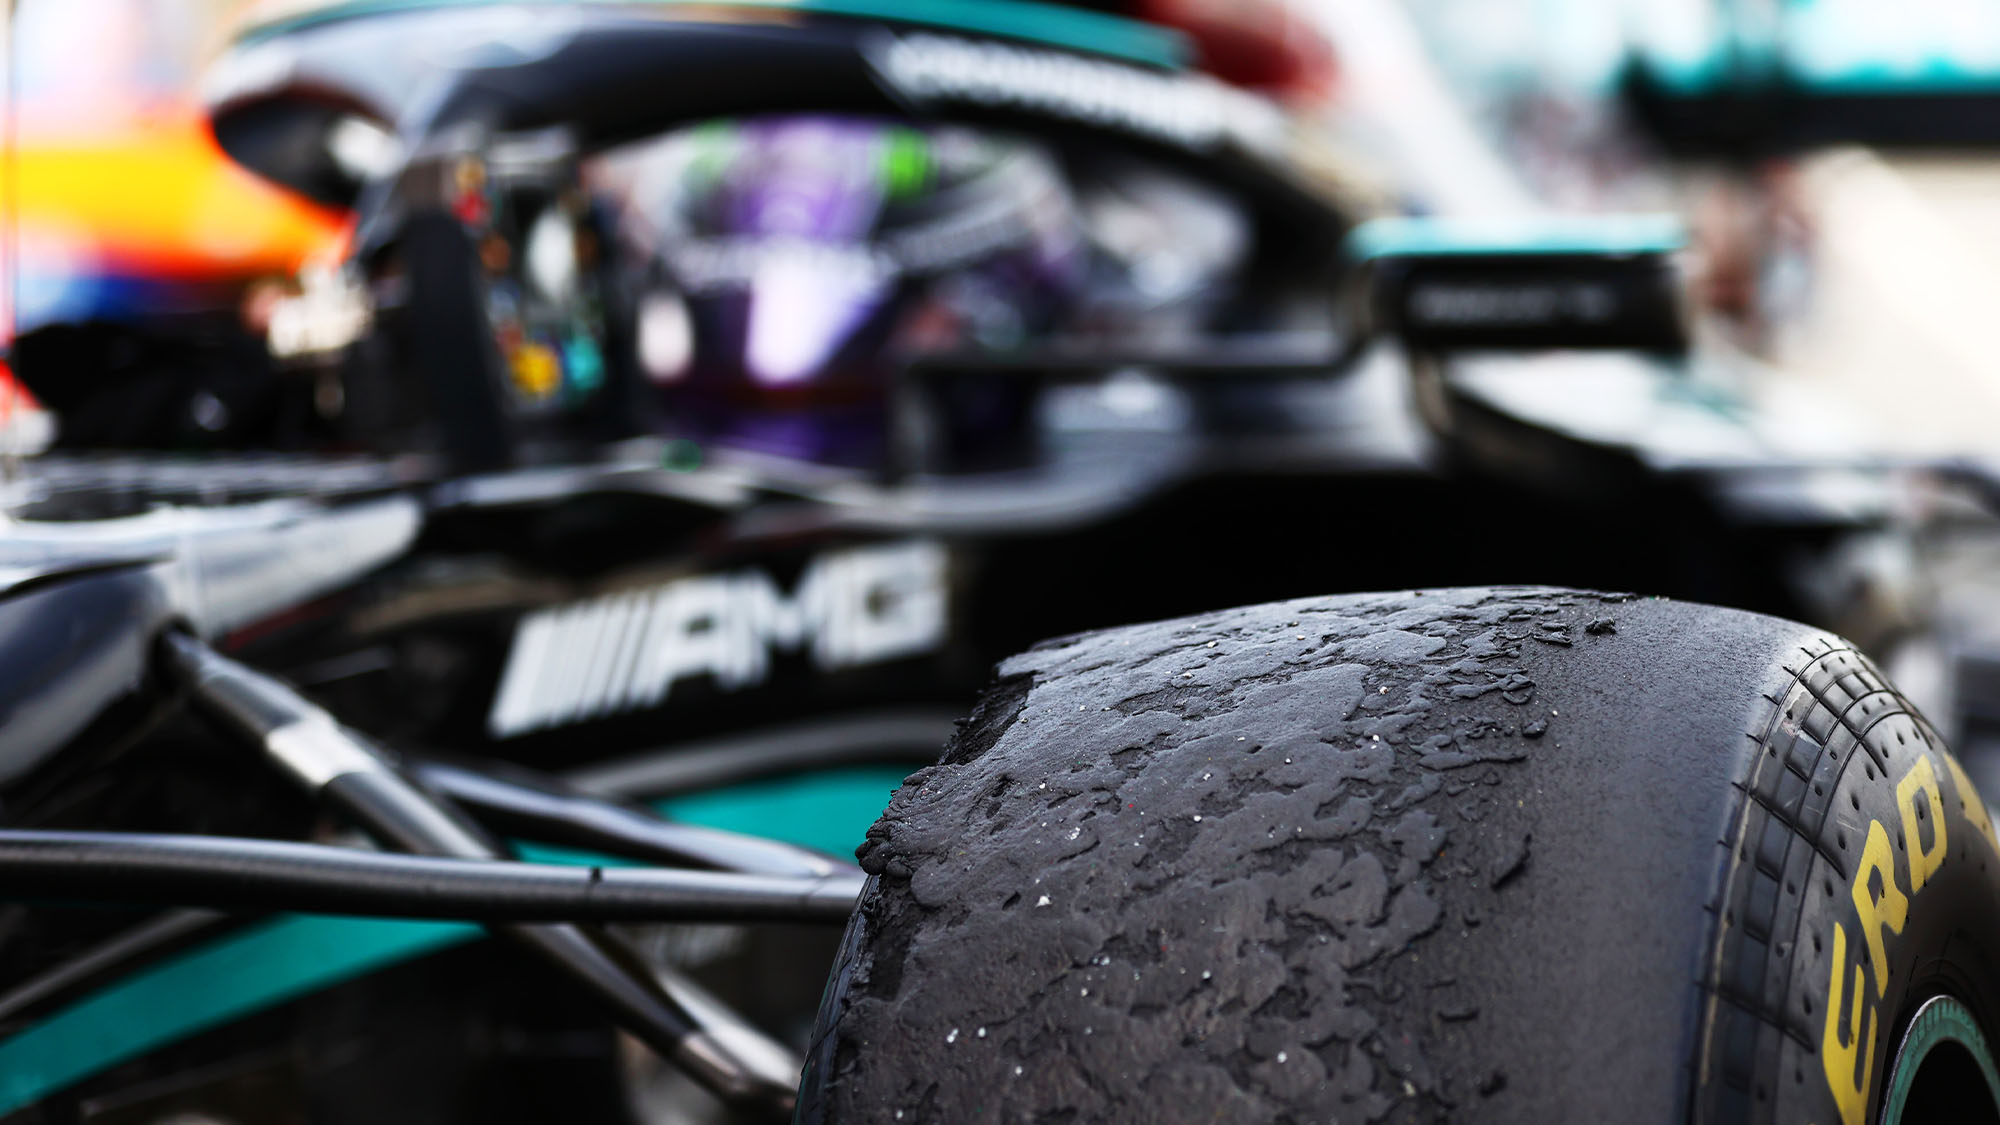 BARCELONA, SPAIN - MAY 09: A detail view of a tyre on the car of Lewis Hamilton of Great Britain and Mercedes AMG Petronas in parc ferme after winning the F1 Grand Prix of Spain at Circuit de Barcelona-Catalunya on May 09, 2021 in Barcelona, Spain. (Photo by Dan Istitene - Formula 1/Formula 1 via Getty Images)